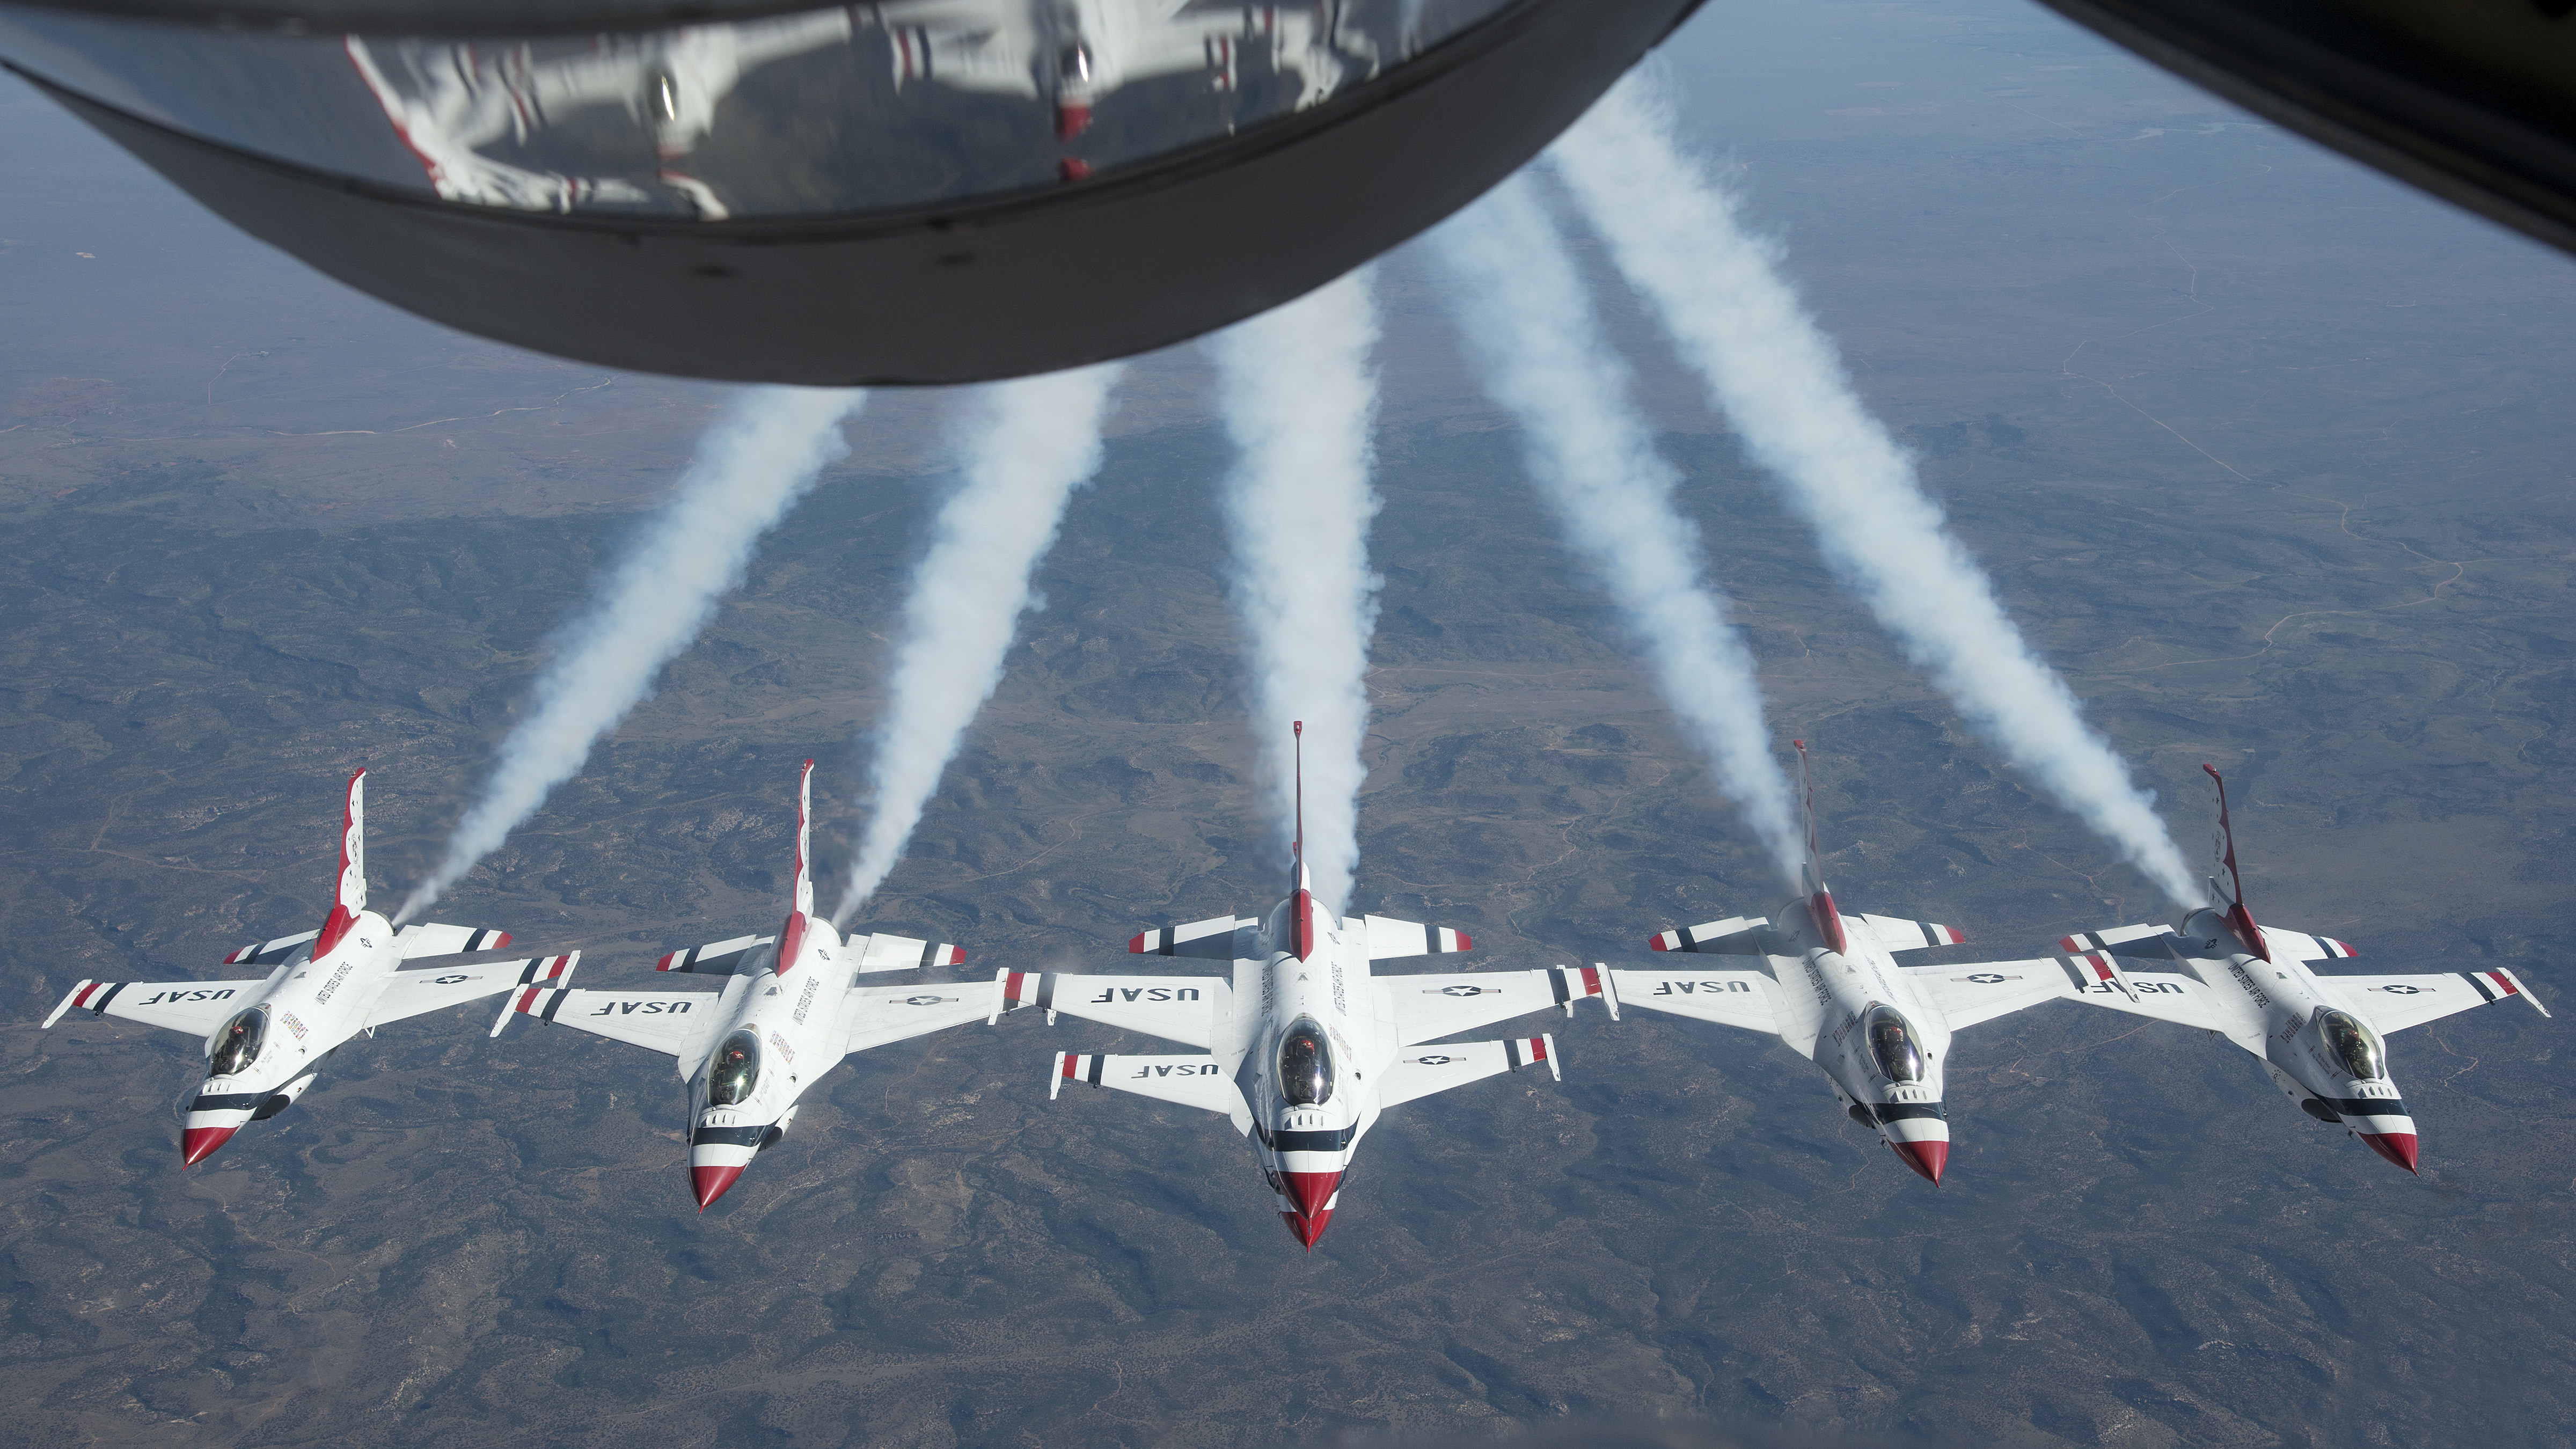 """The United States Air Force Air Demonstration Squadron """"Thunderbirds"""" fly in formation after being refueled by the 50th Air Refueling Squadron from MacDill Air Force Base, Fla., Oct. 14, 2019. The Thunderbirds are a flying aerobatic team that performs at air shows around the world. (U.S. Air Force photo by Airman 1st Class Ryan C. Grossklag)"""